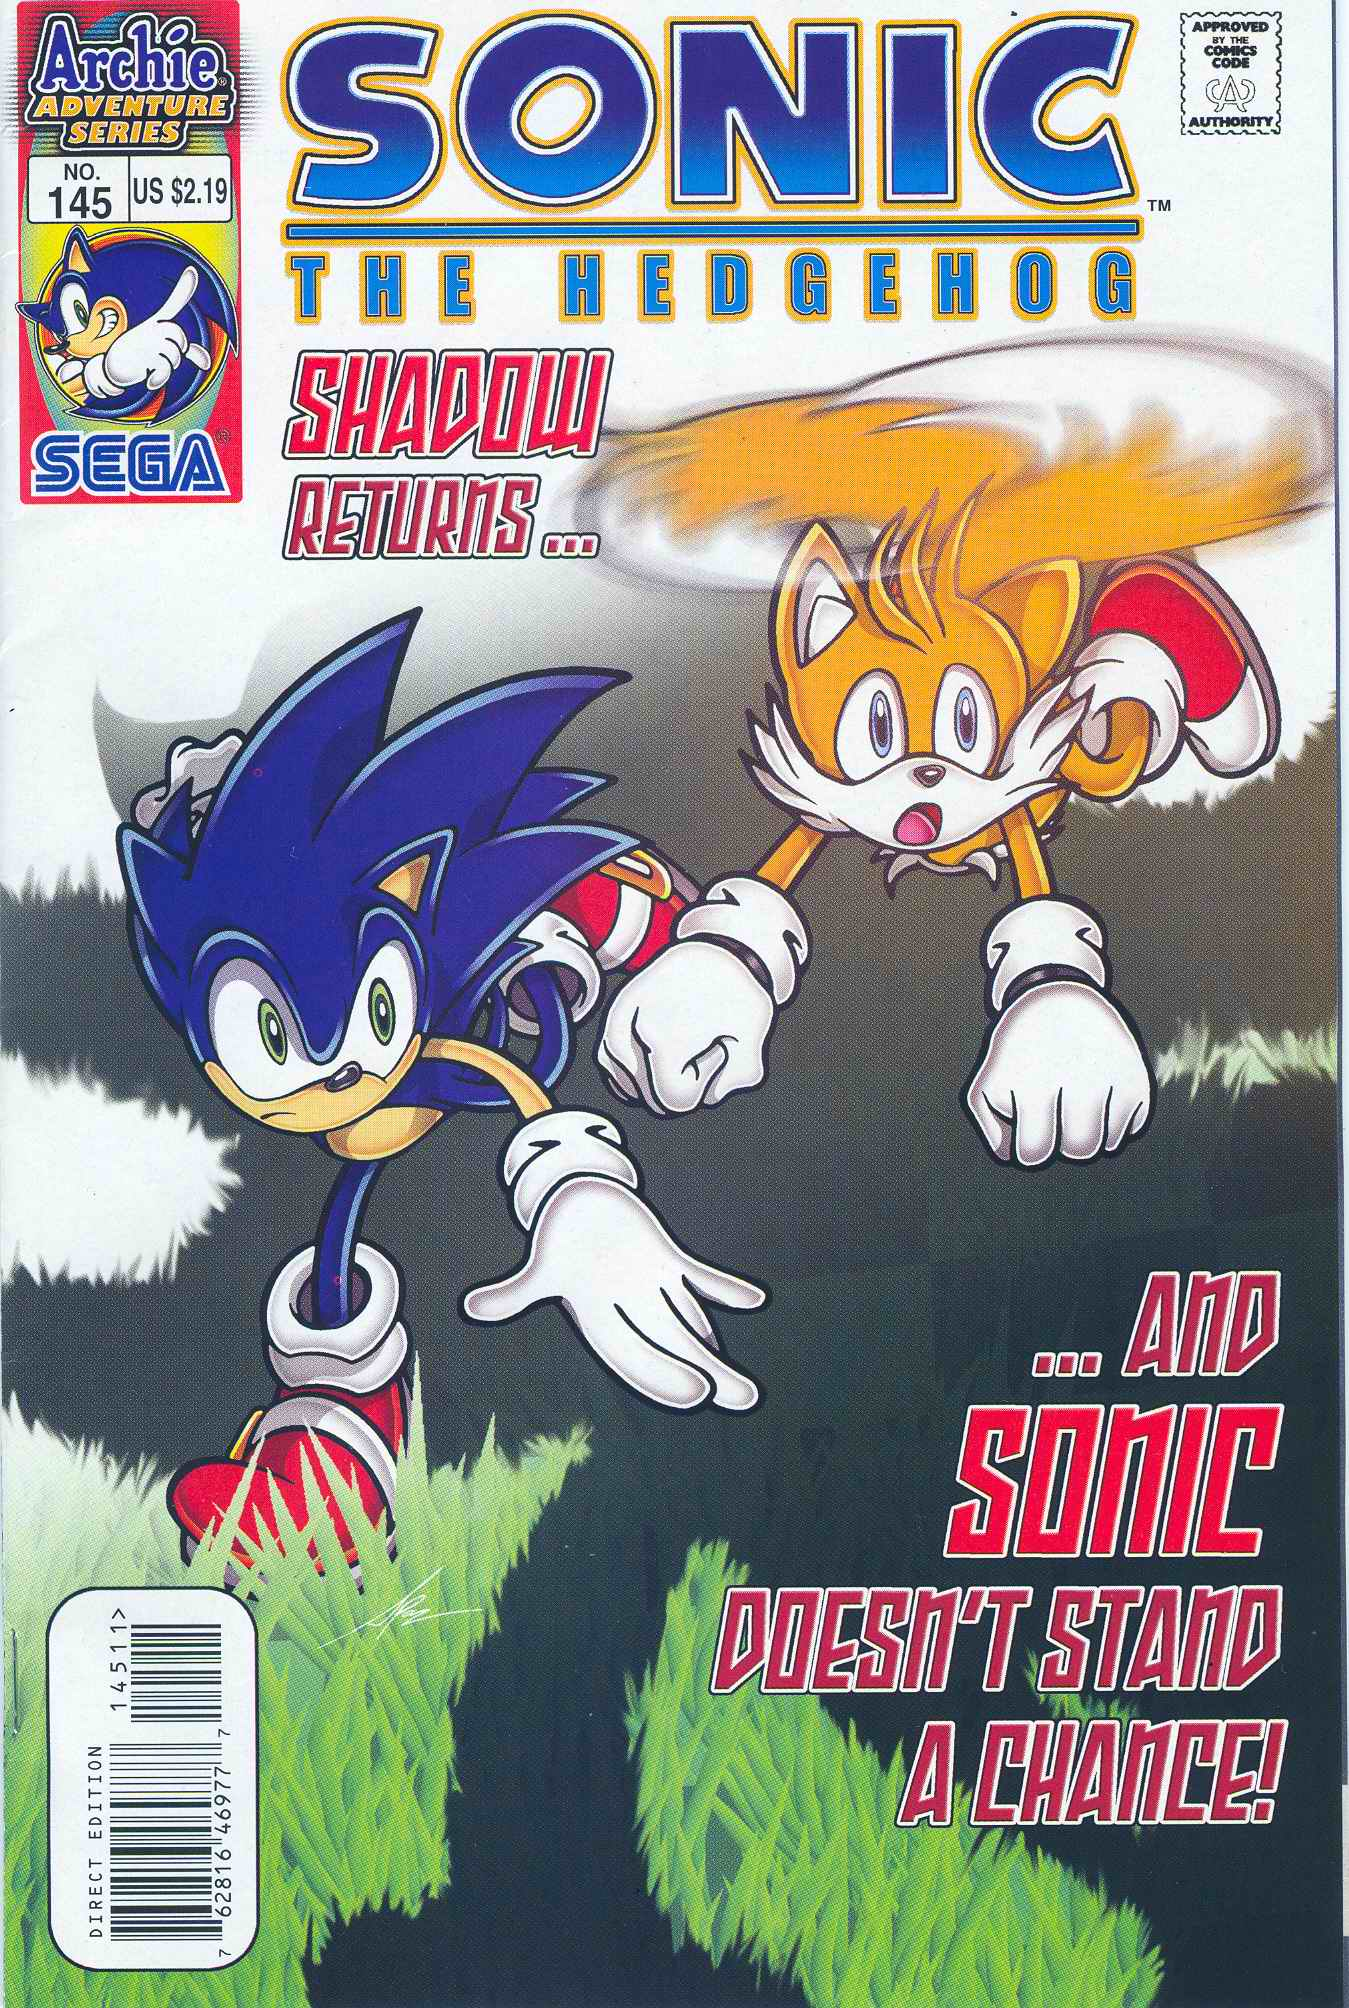 Sonic - Archie Adventure Series March 2005 Comic cover page